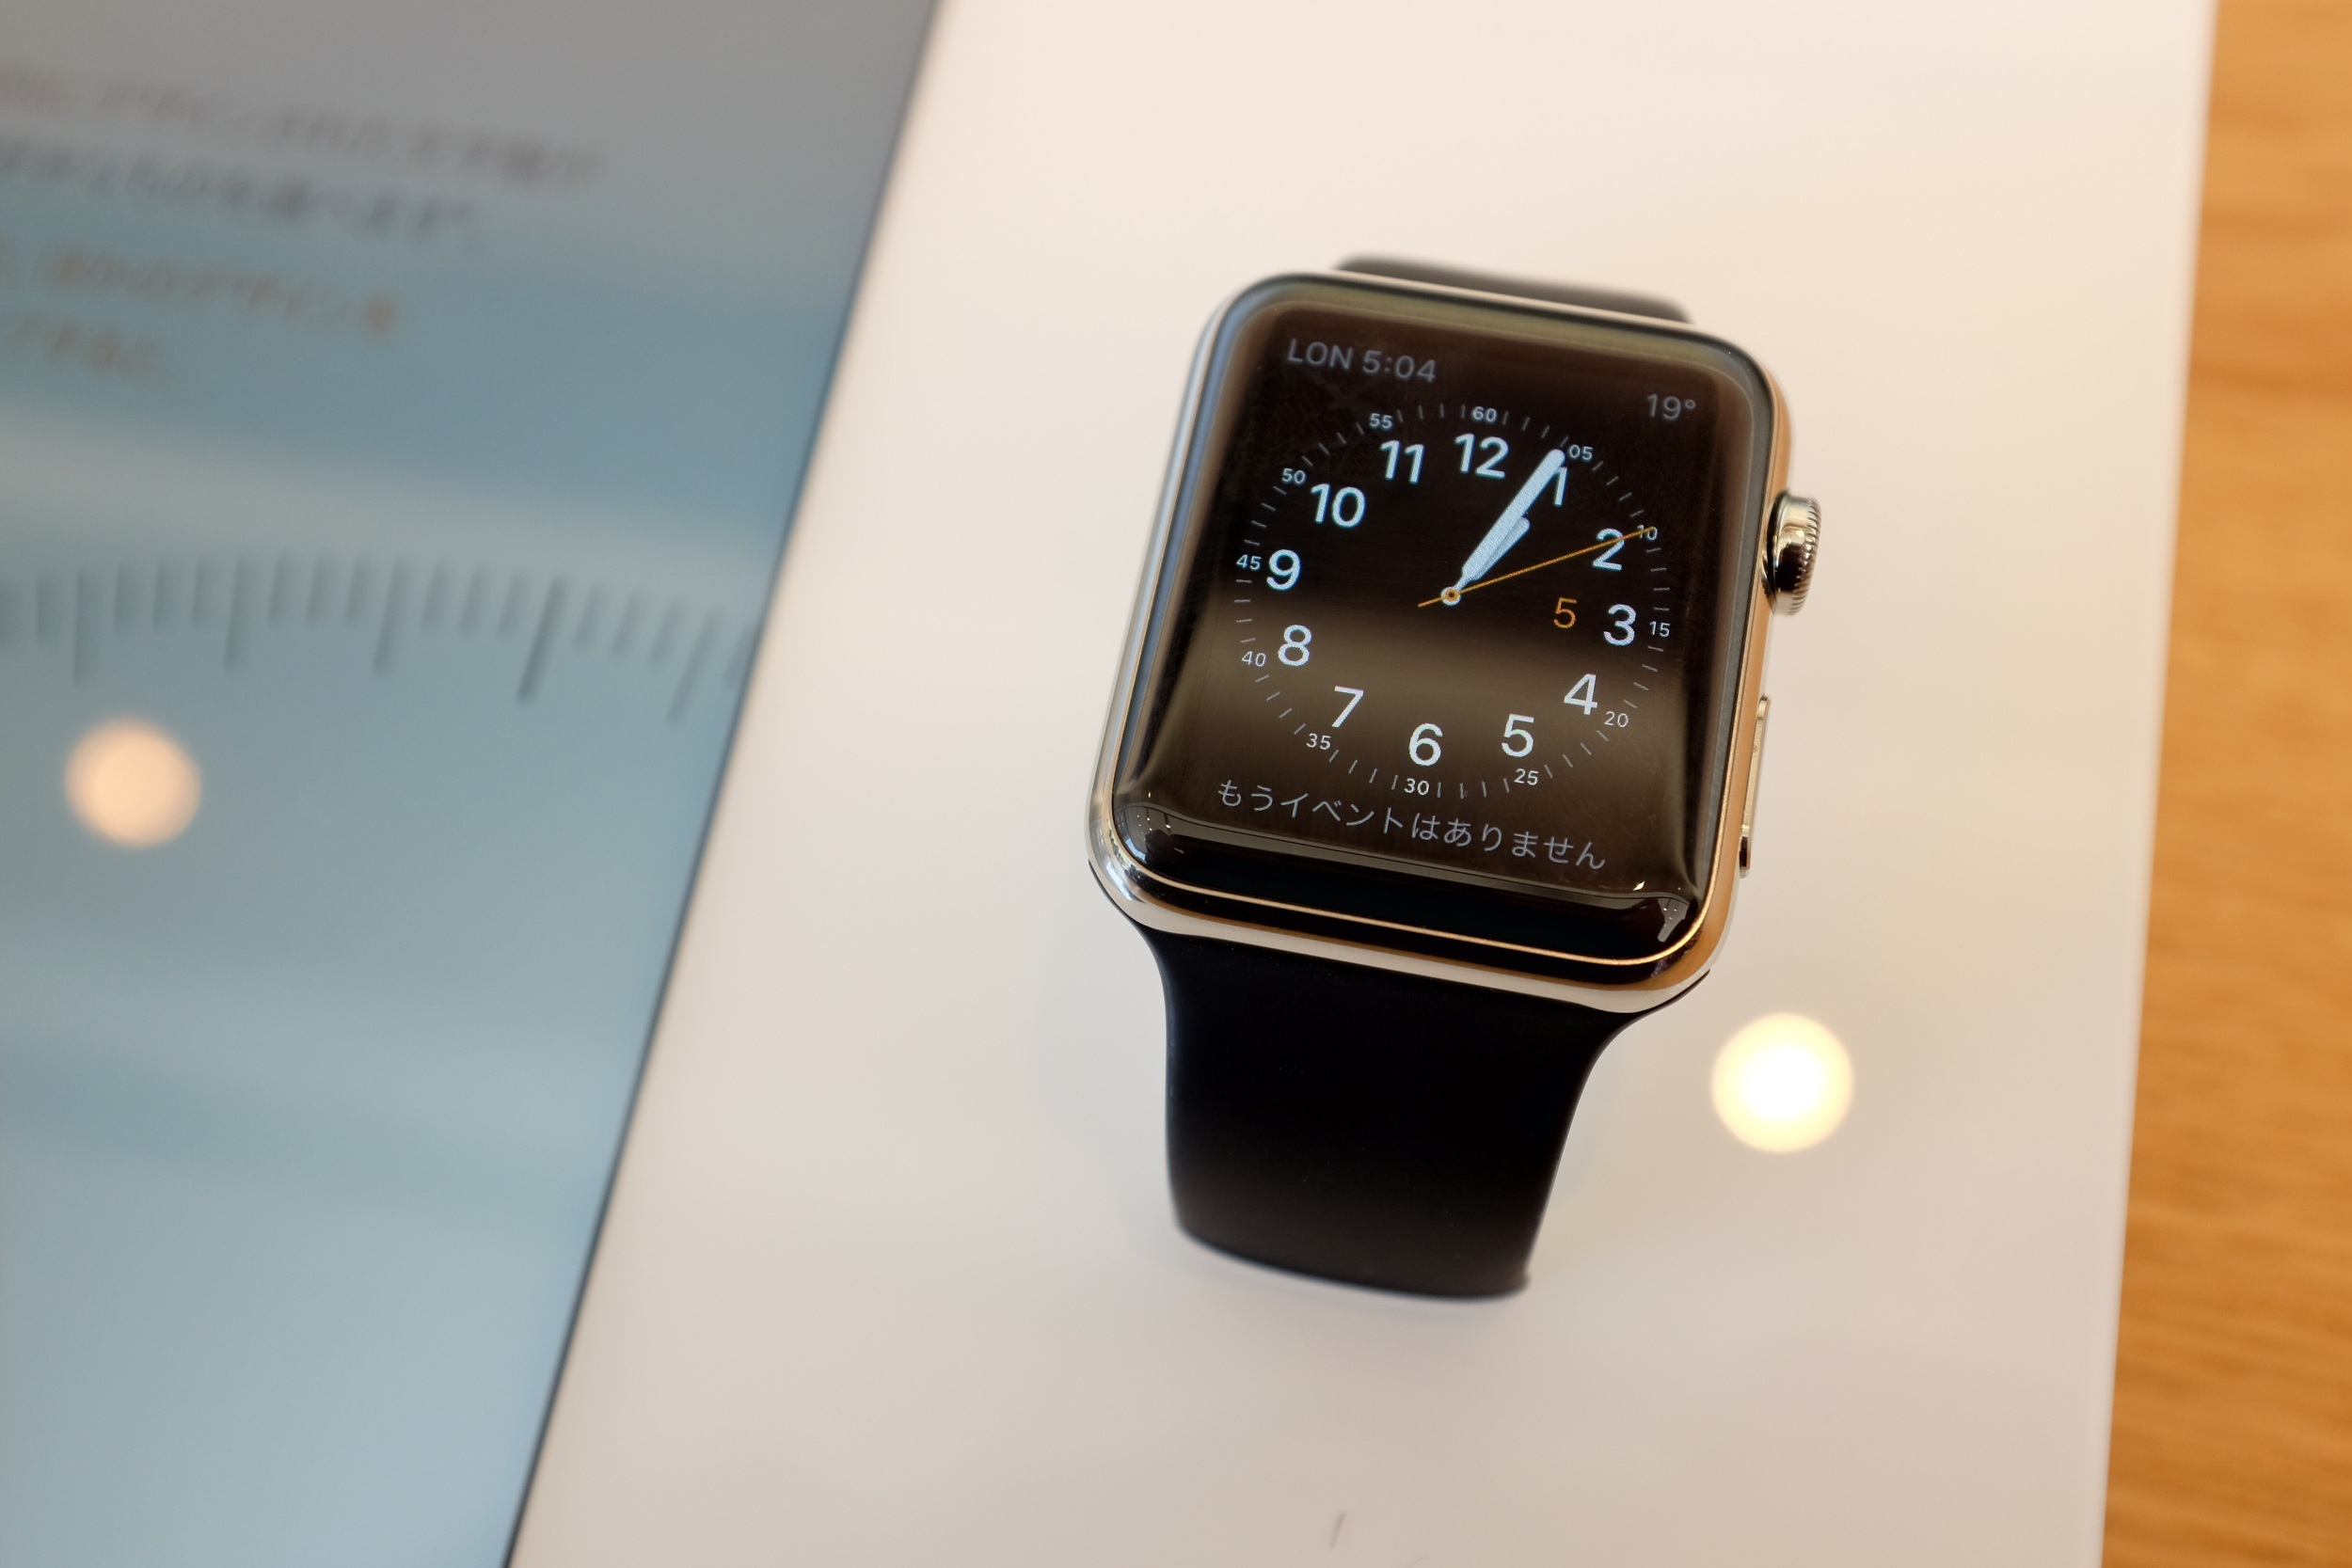 The new, incredibly difficult to obtain Apple Watch on display at the Apple Store in Omotesando.